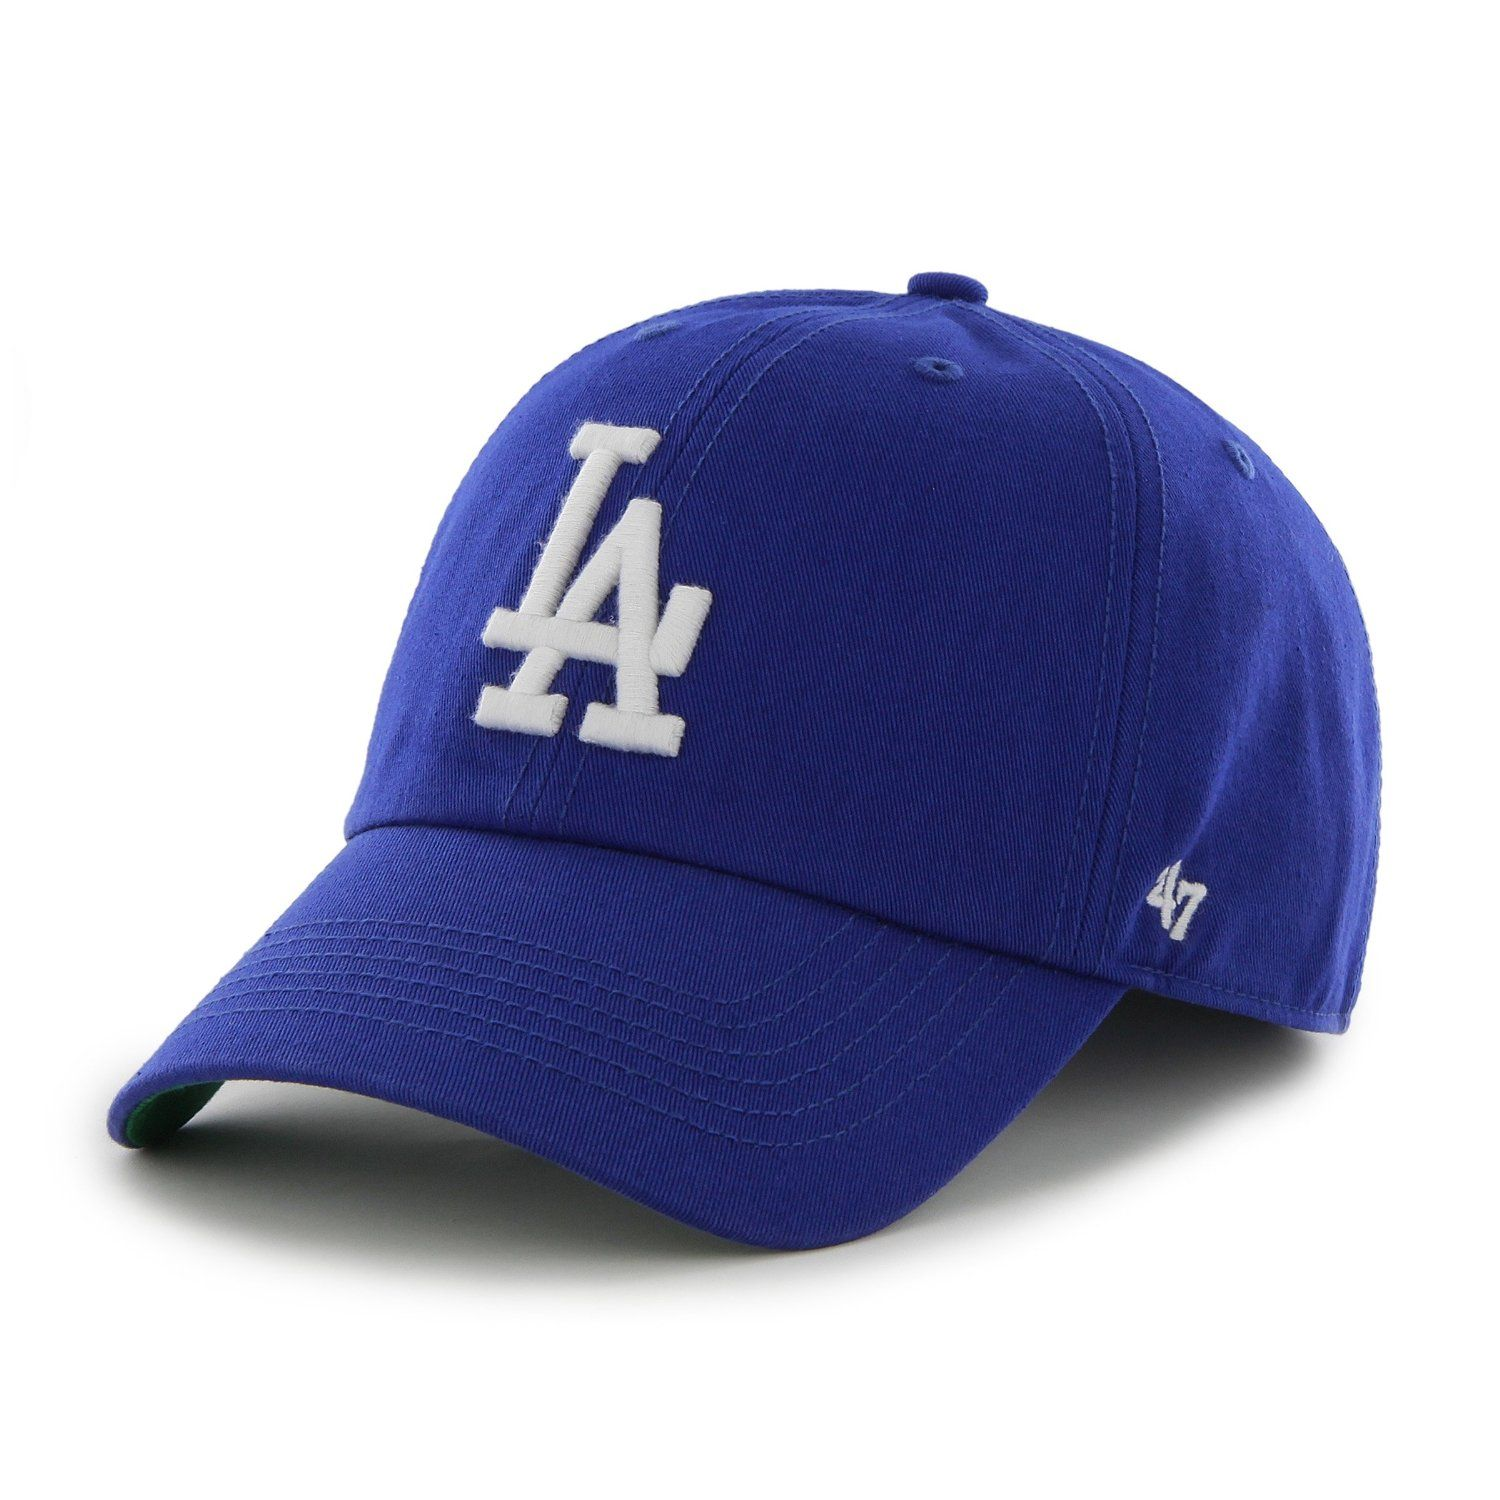 a936edd052eff MLB Los Angeles Dodgers  47 Franchise Fitted Hat